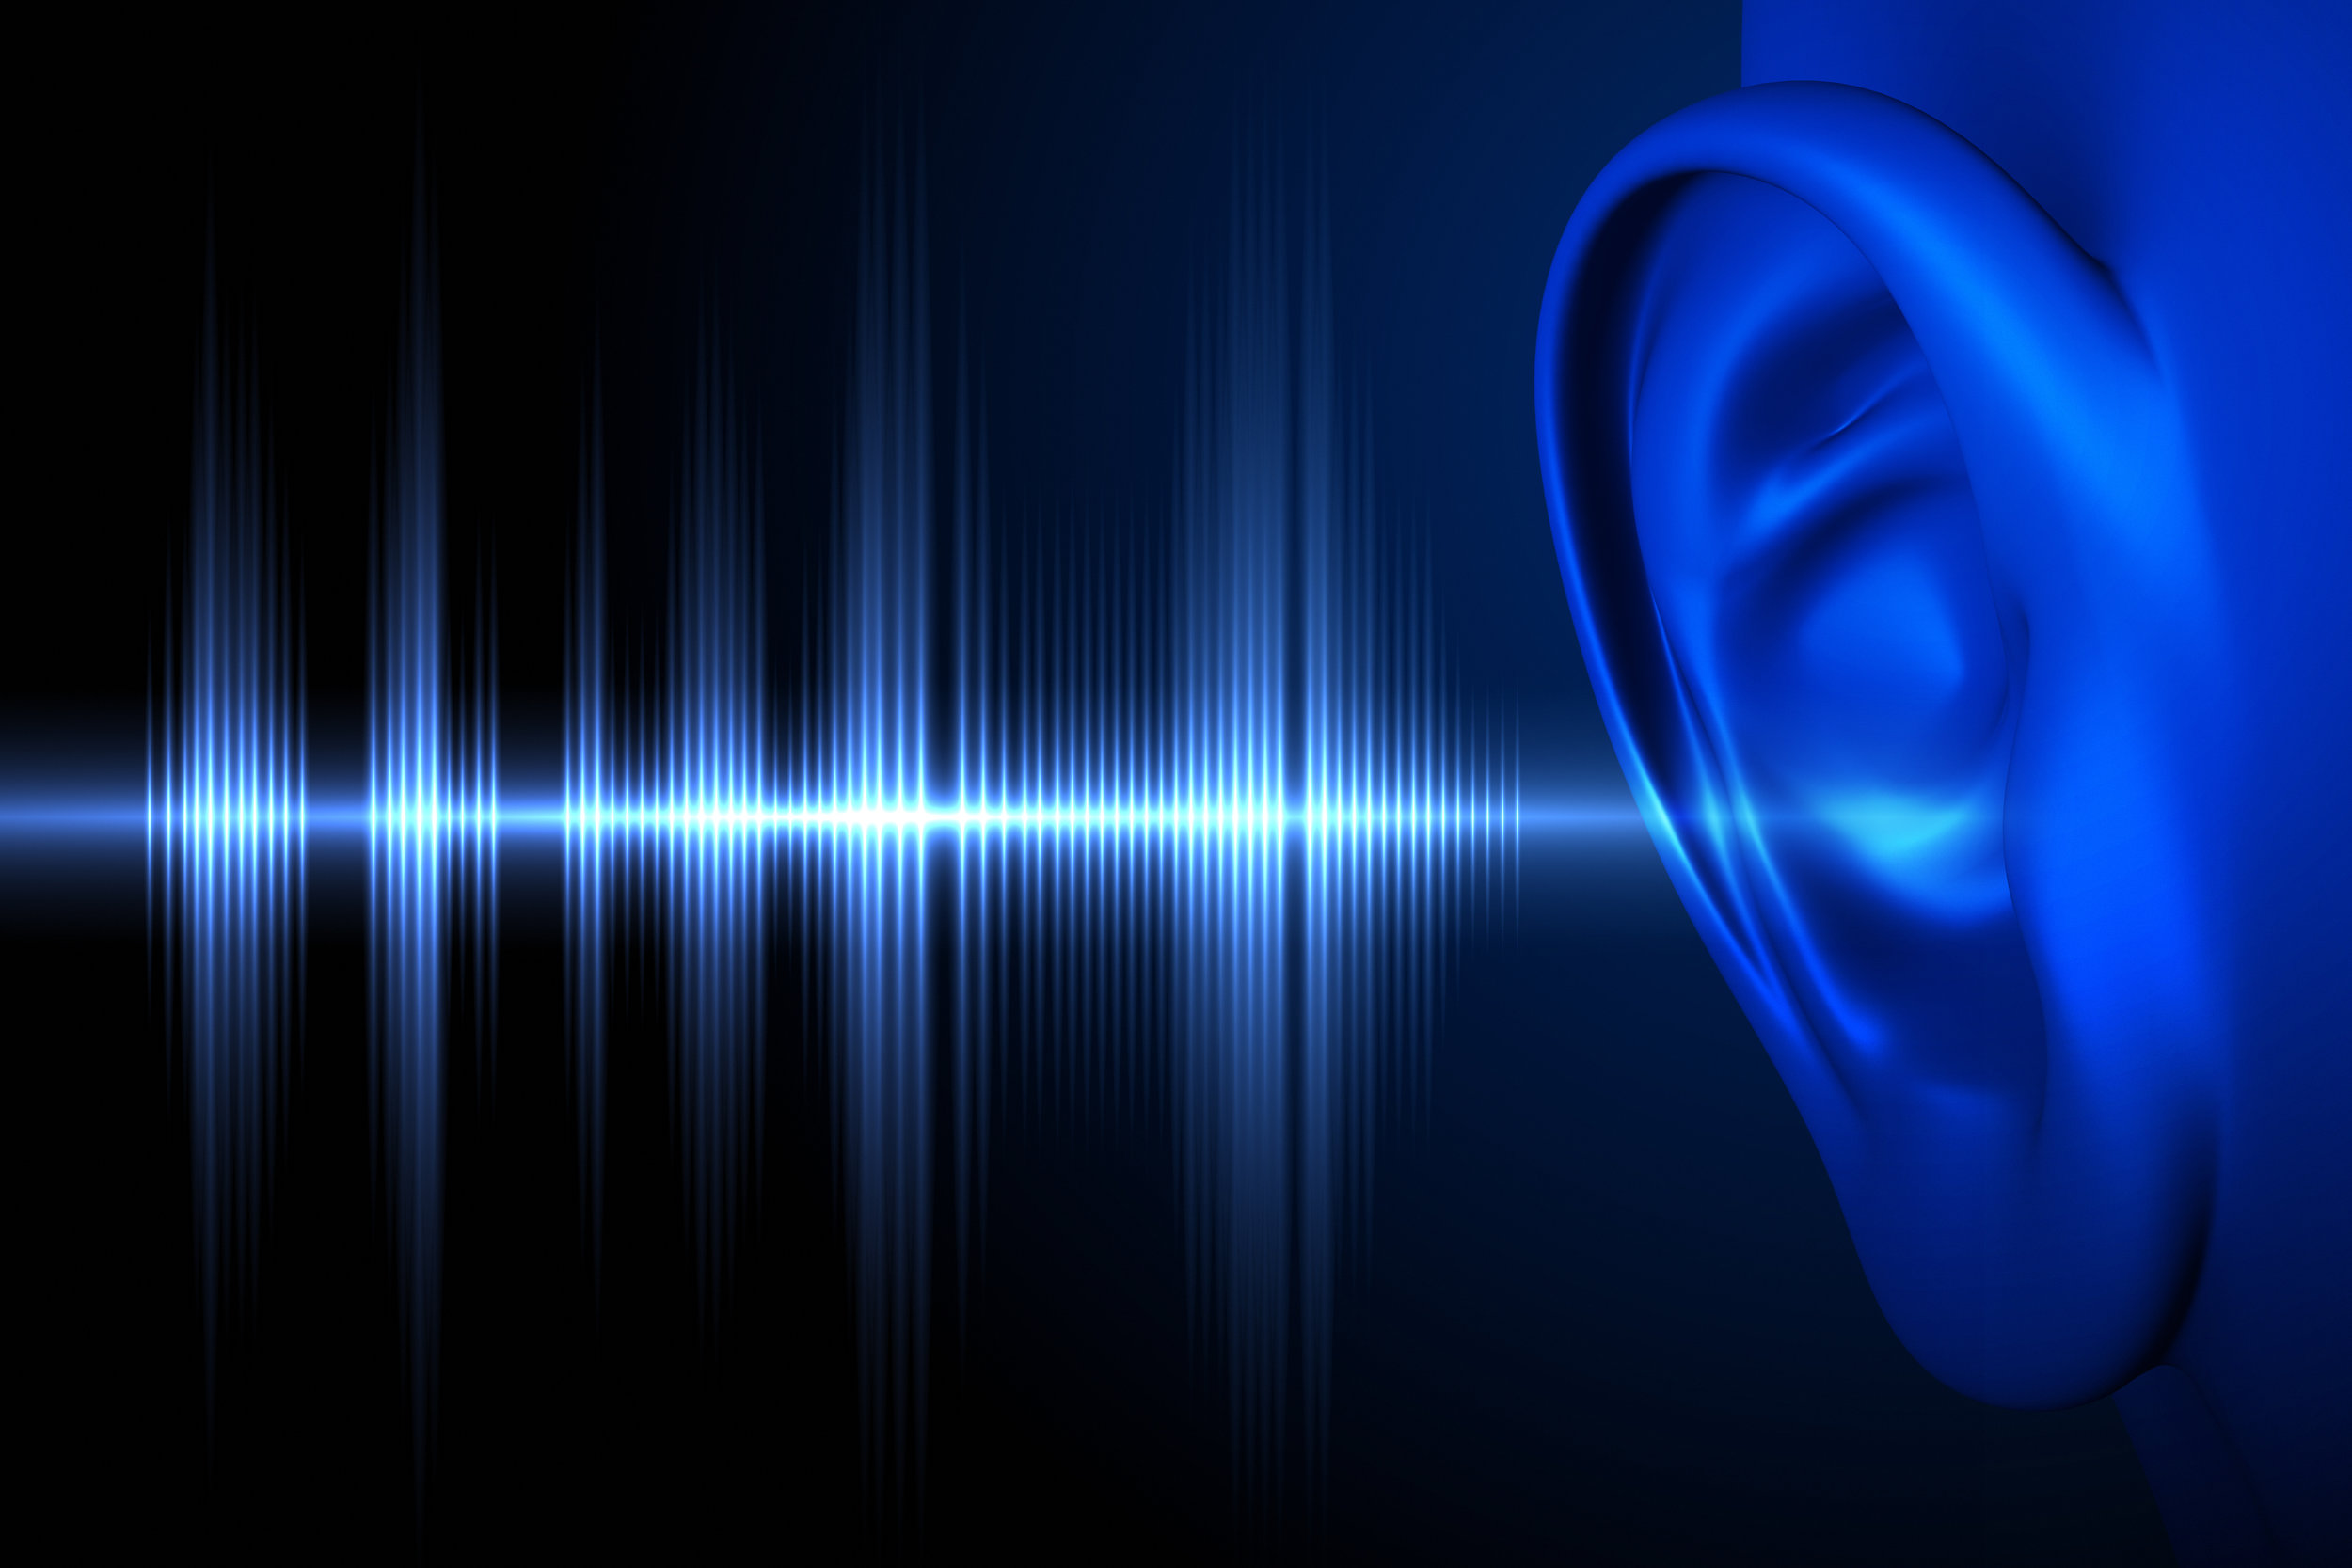 Too much noise? - If you are concerned about the noise you are exposed to on a regular basis, contact Sound Hearing Care at 864-881-1663 to meet with one of our hearing care specialists to discuss the best way to prevent hearing loss.